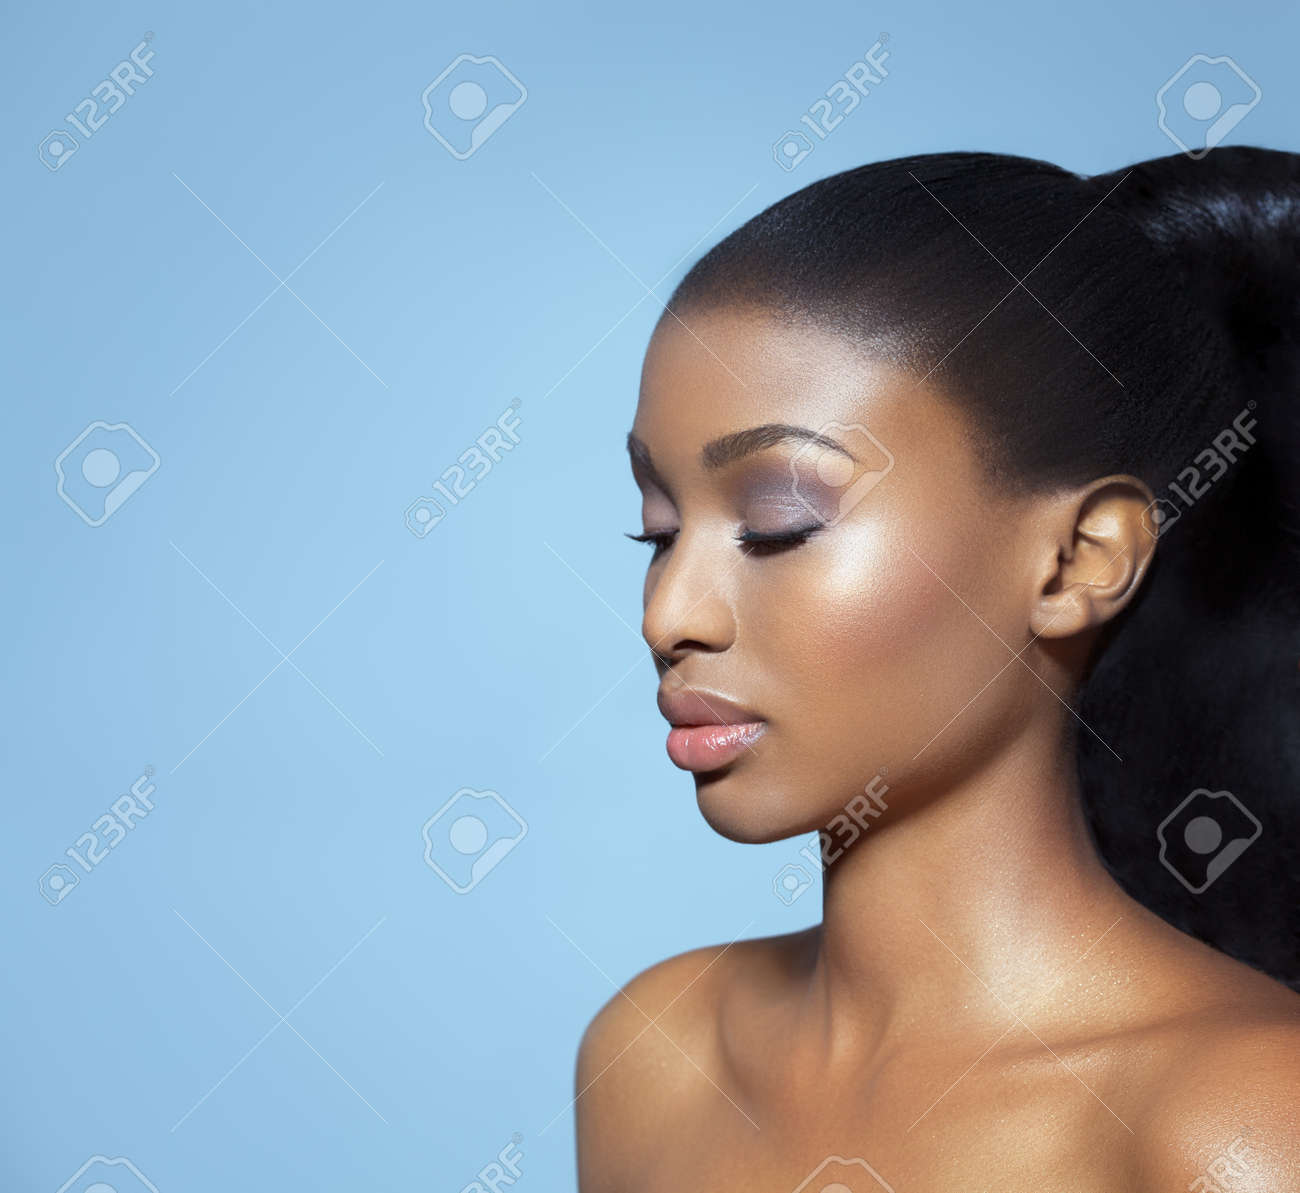 Portrait of beautiful serene African girl with closed eyes over blue studio background. African beauty with makeup and long hair. - 45872972